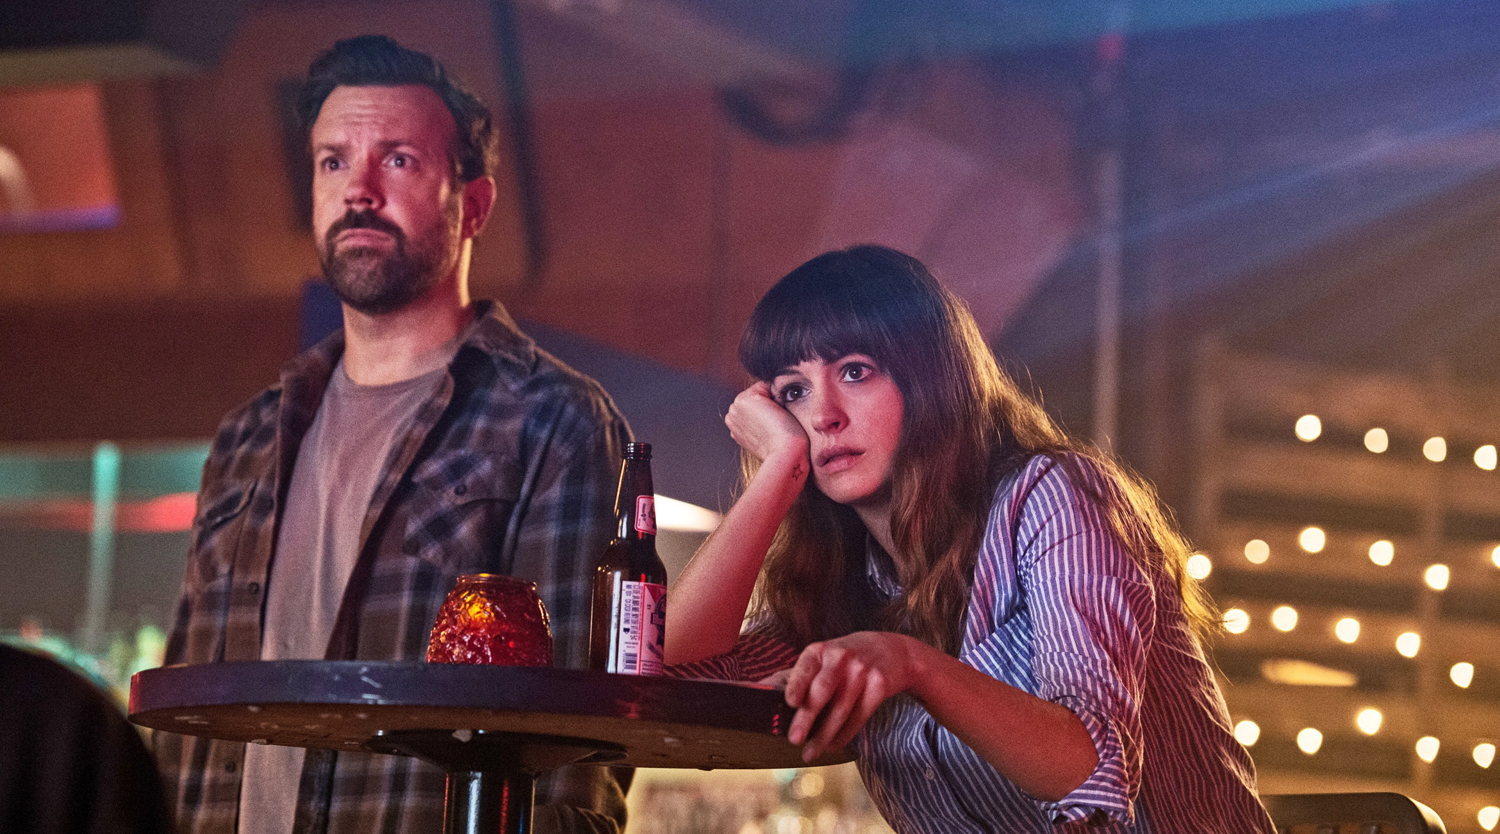 'Colossal' Review: Giant-Monster Movie Is Slyest WTF Rom-Com in Ages